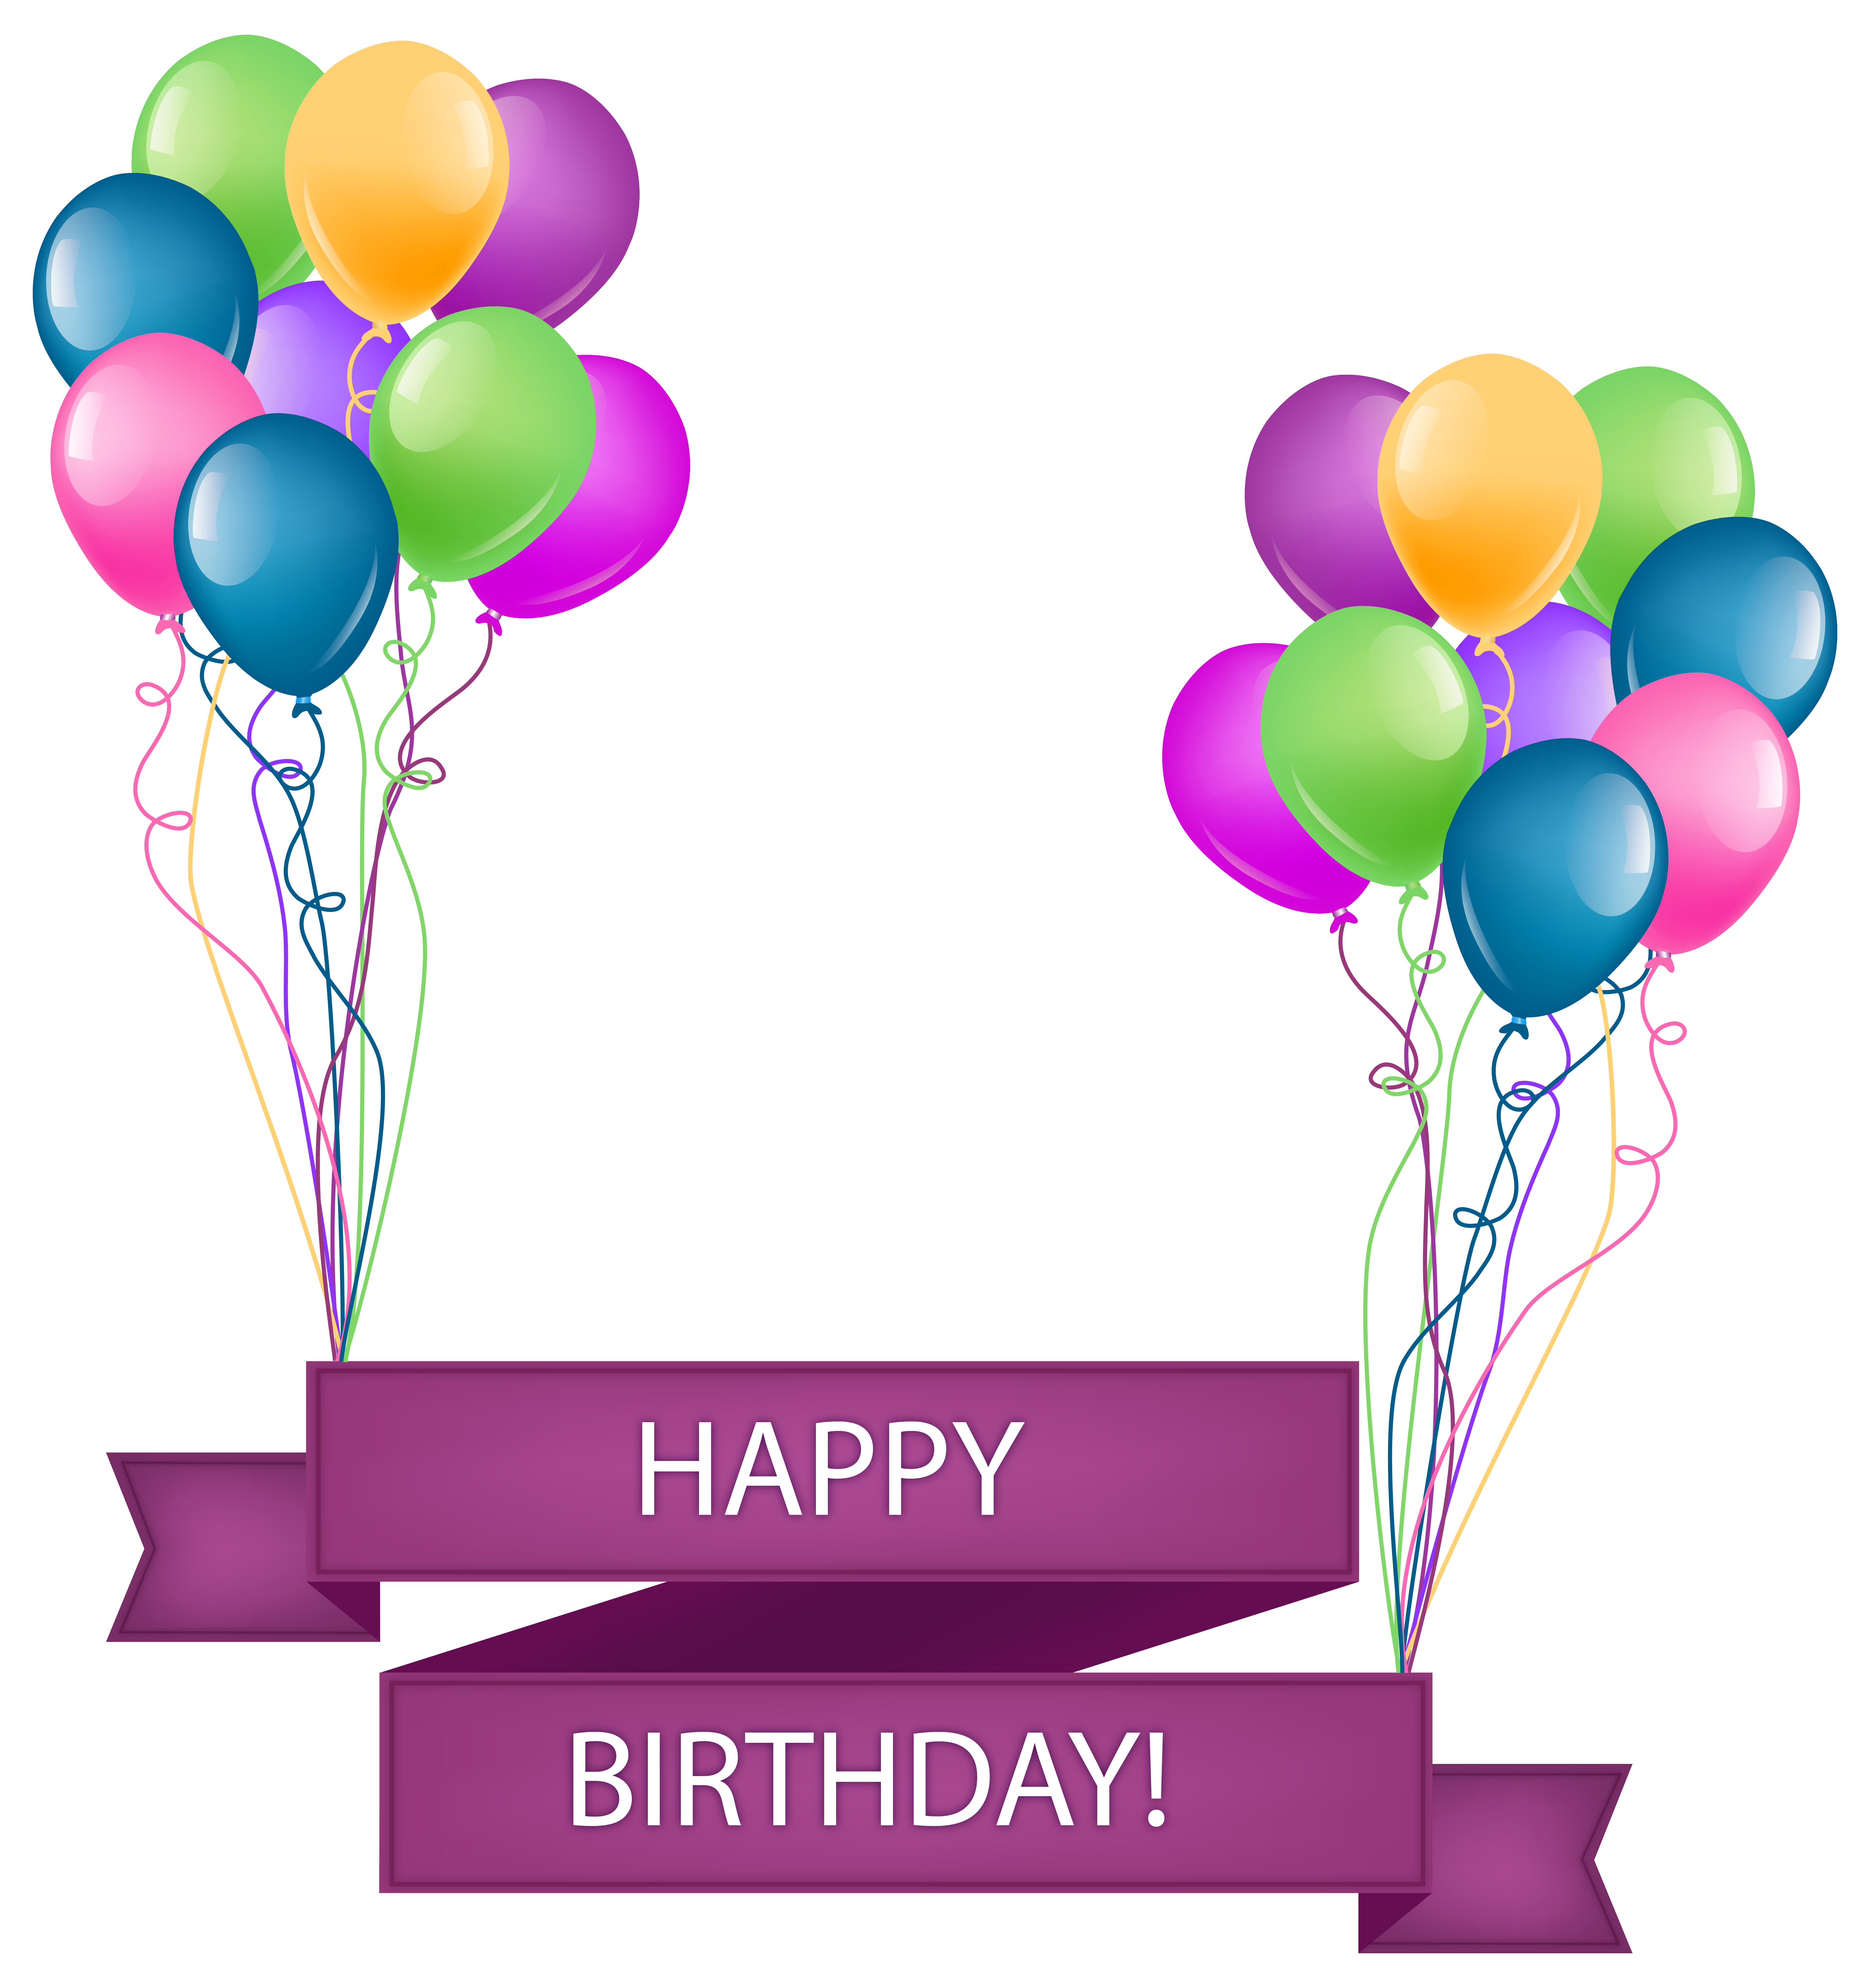 barbie birthday clipart at getdrawings com free for personal use